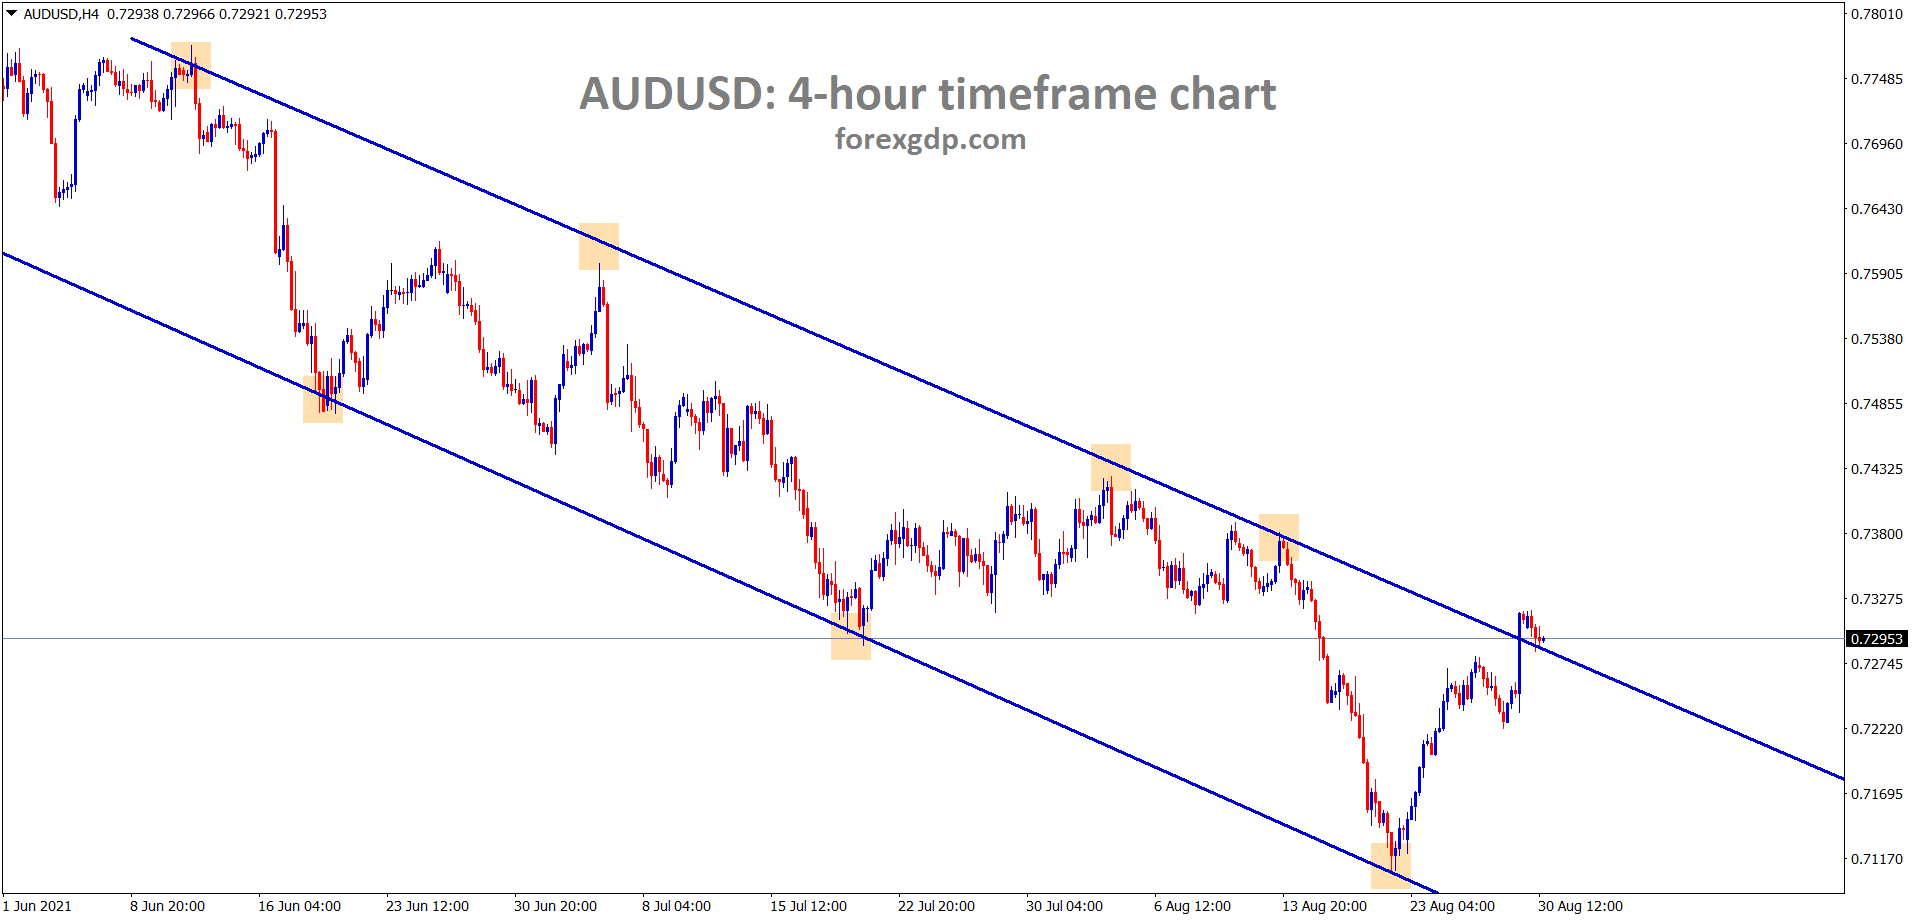 AUDUSD is trying to break the lower high of the descending channel wait for the confirmation of breakout or reversal